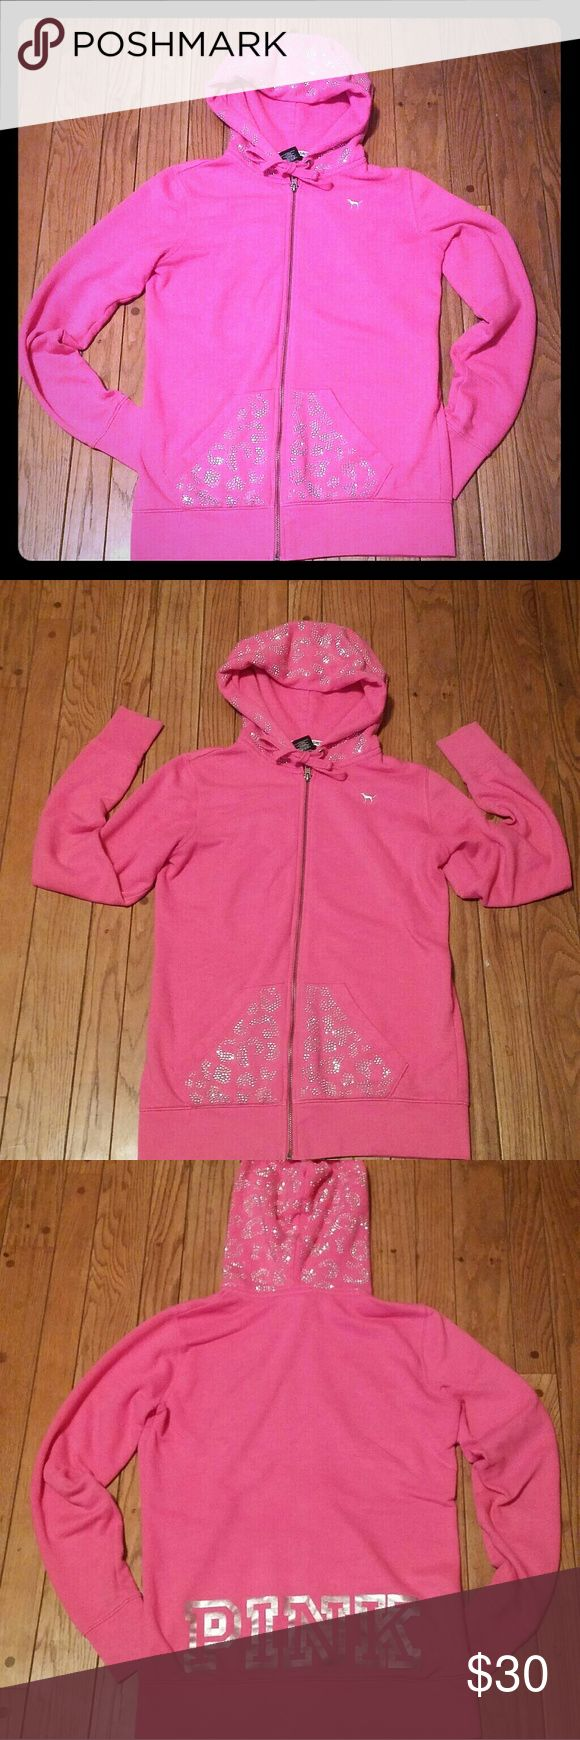 Victoria's Secret PINK Cheetah BLING Hoodie XS Victoria's Secret PINK Cheetah pattern BLING Hoodie XS. Size XS, but as with all VS hoodies it will fit a small. A little longer than a typical hoodie which is perfect with leggings. Only slight wear at ends of sleeves, not really noticeable. I would say good condition. PINK Victoria's Secret Tops Sweatshirts & Hoodies